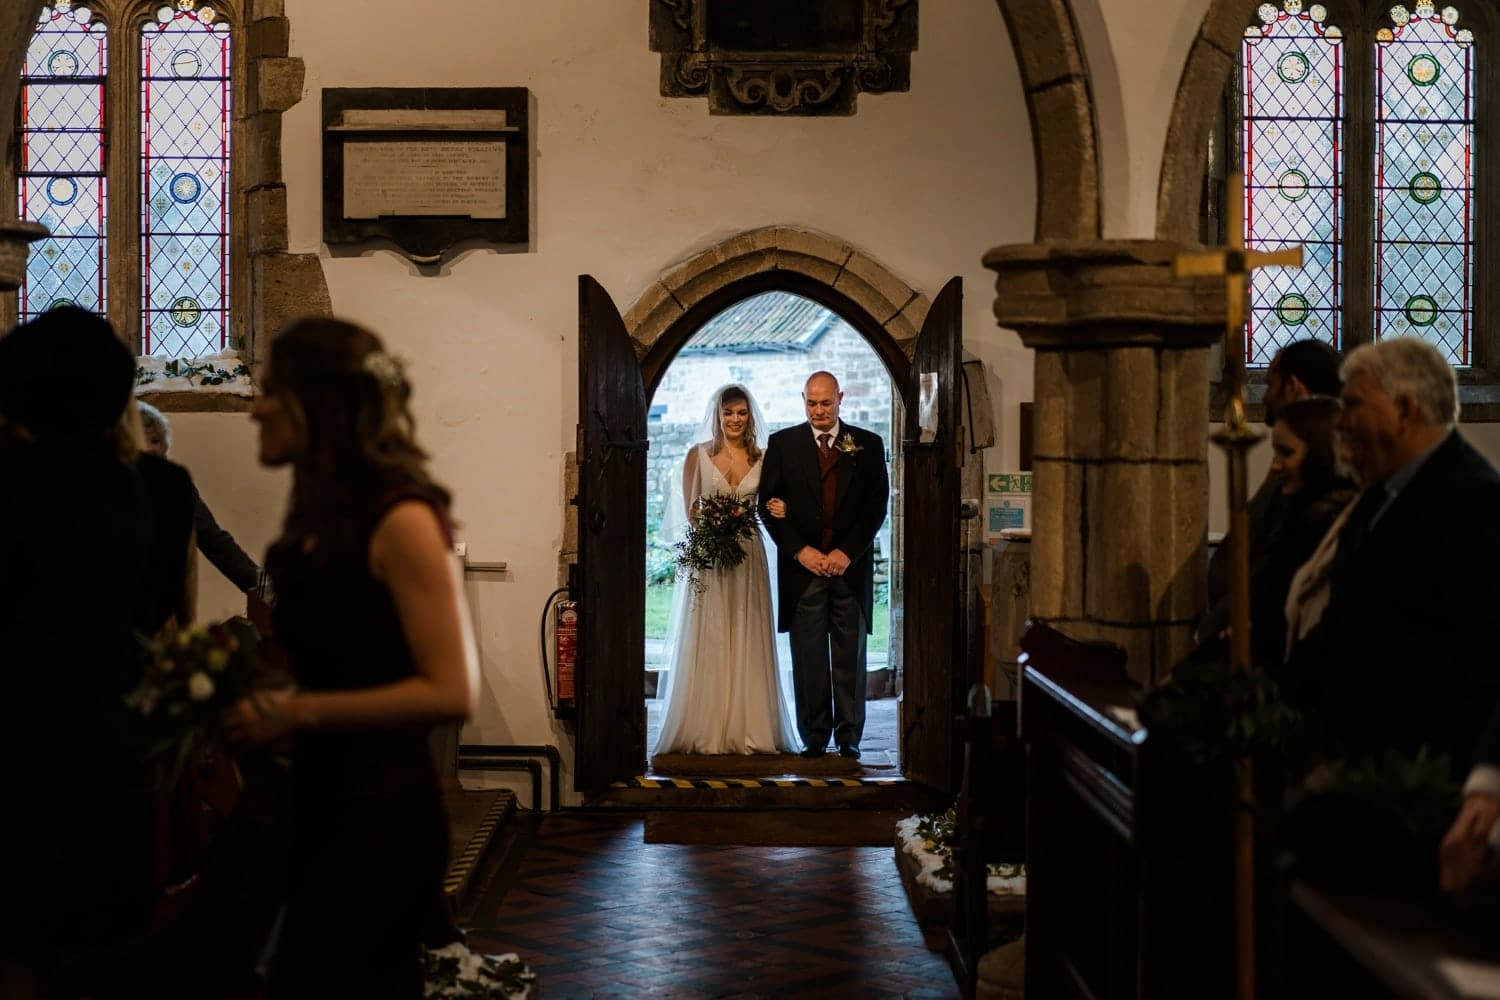 Bride arrives for wedding at St Tewdric's Church in Monmouthshire